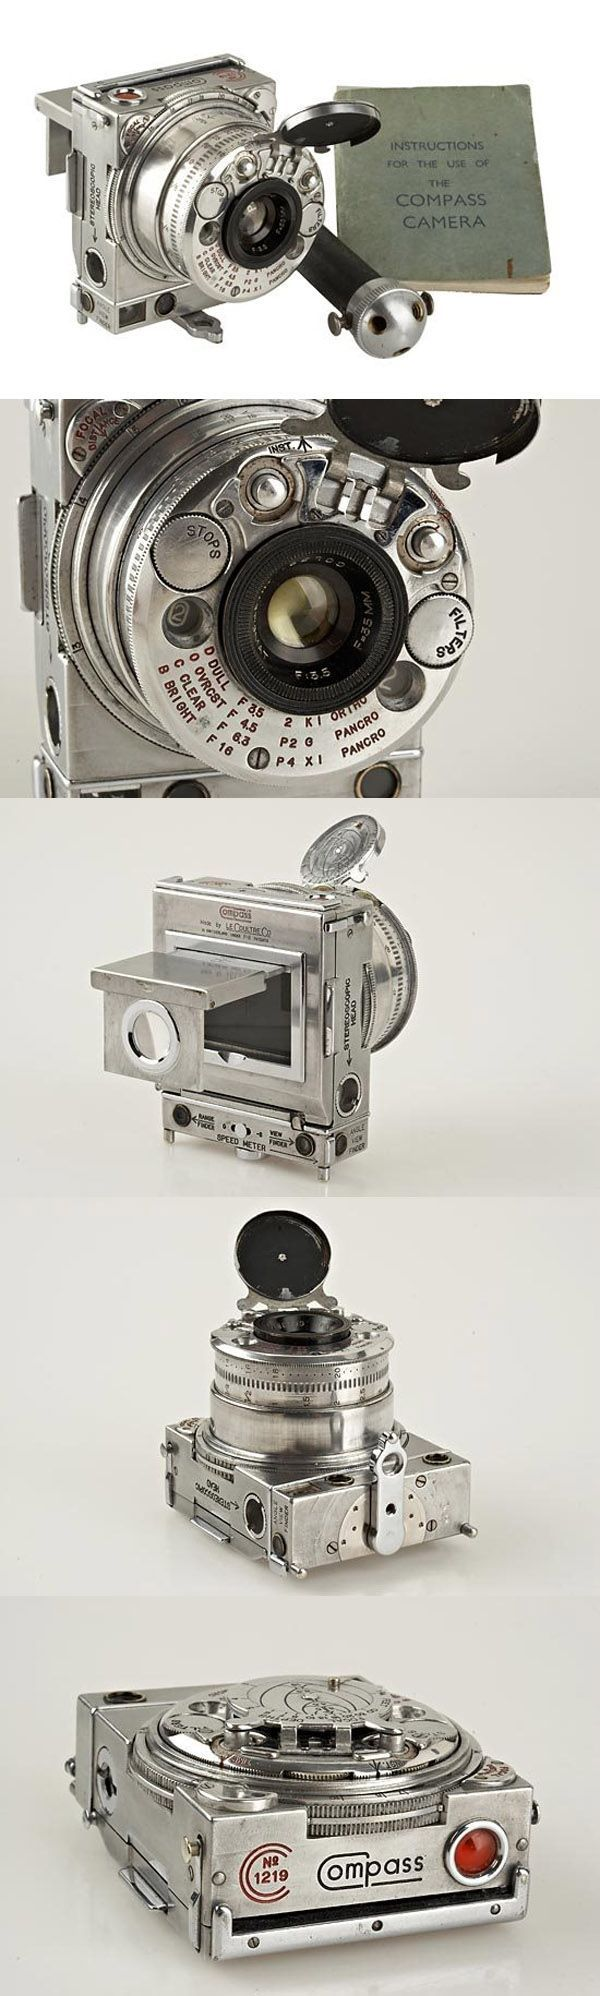 Compact 35mm rangefinder Camera  c.1938 ::  made by Jaeger LeCoultre for Compass Camera Ltd.